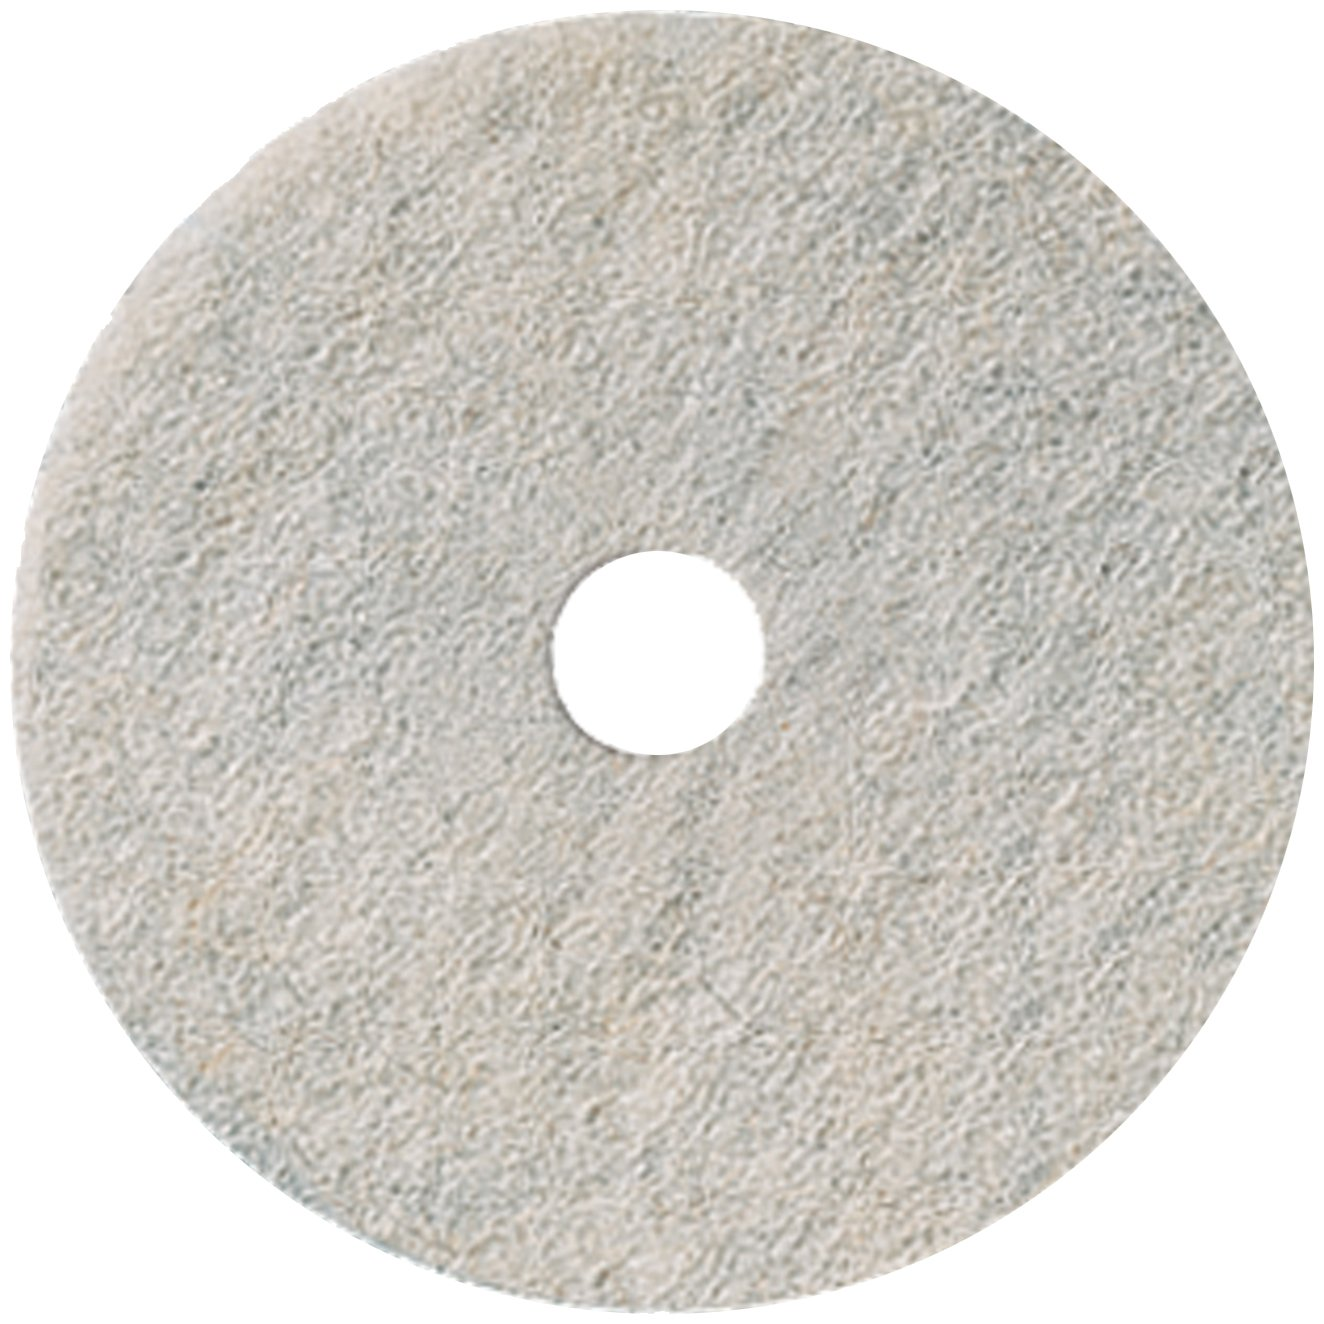 3M Natural Blend White Pad 3300, 19'' (Case of 5)